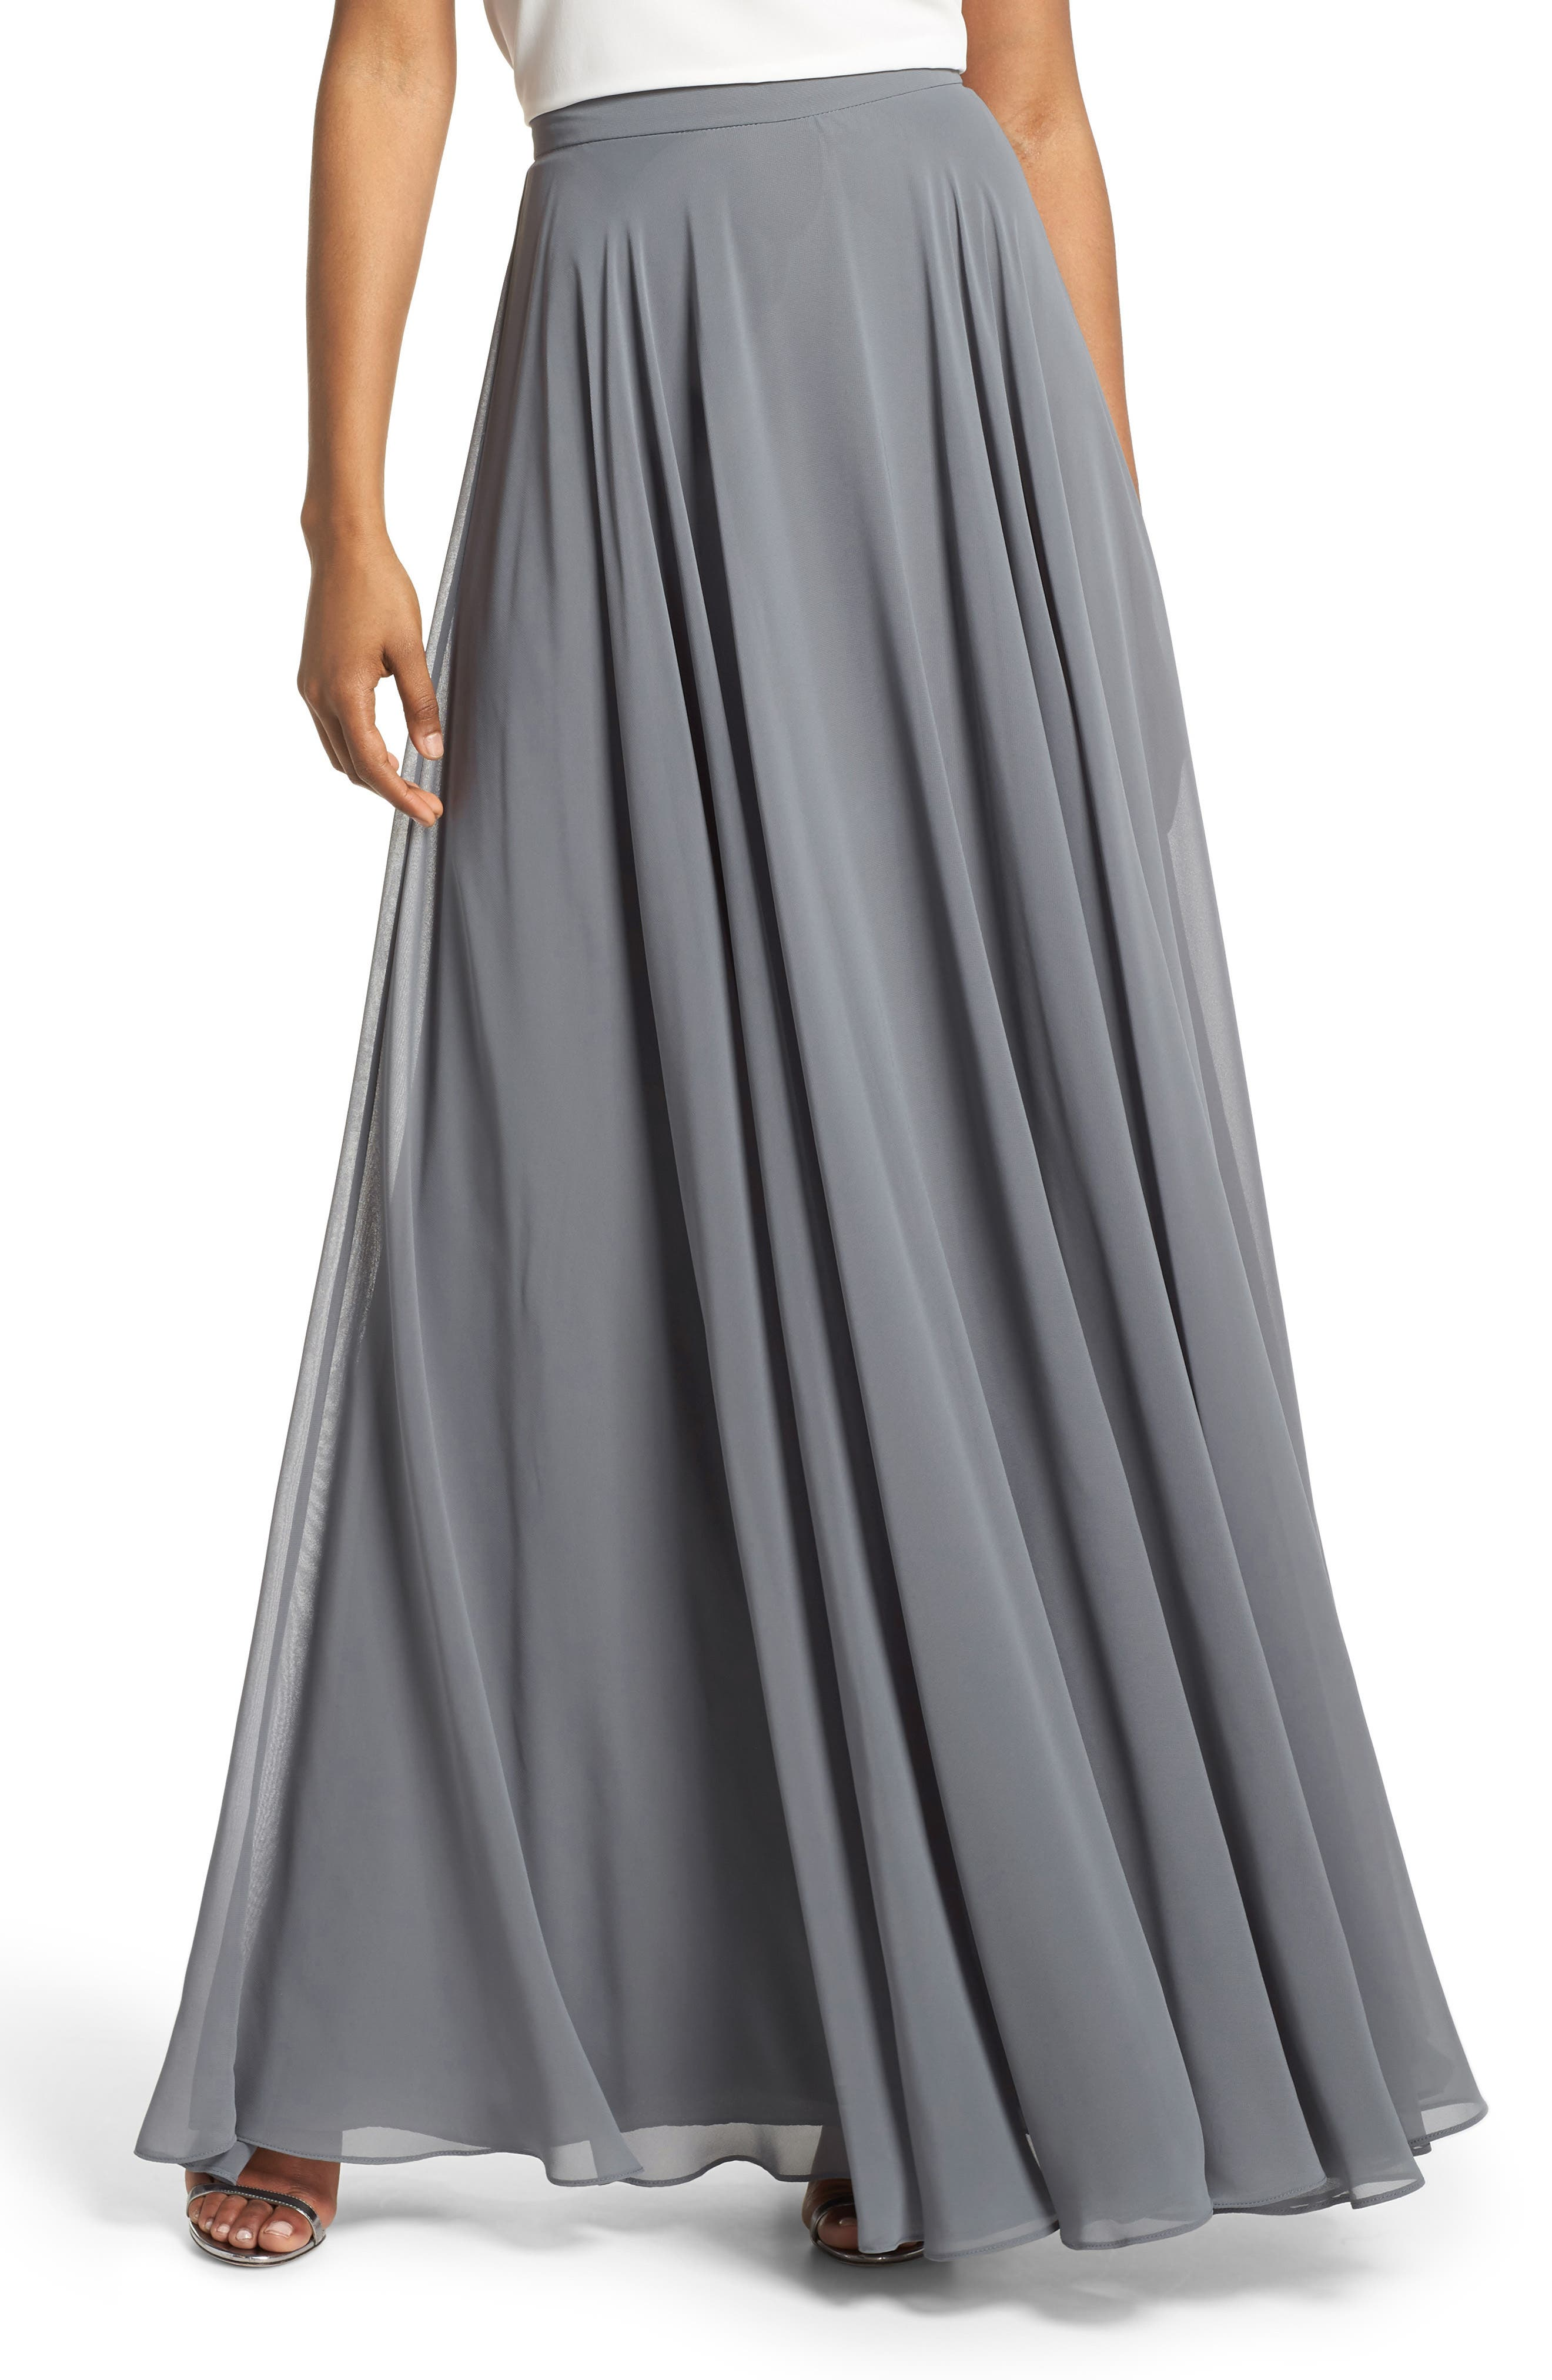 Hampton Long A-Line Chiffon Skirt,                         Main,                         color, DENMARK BLUE